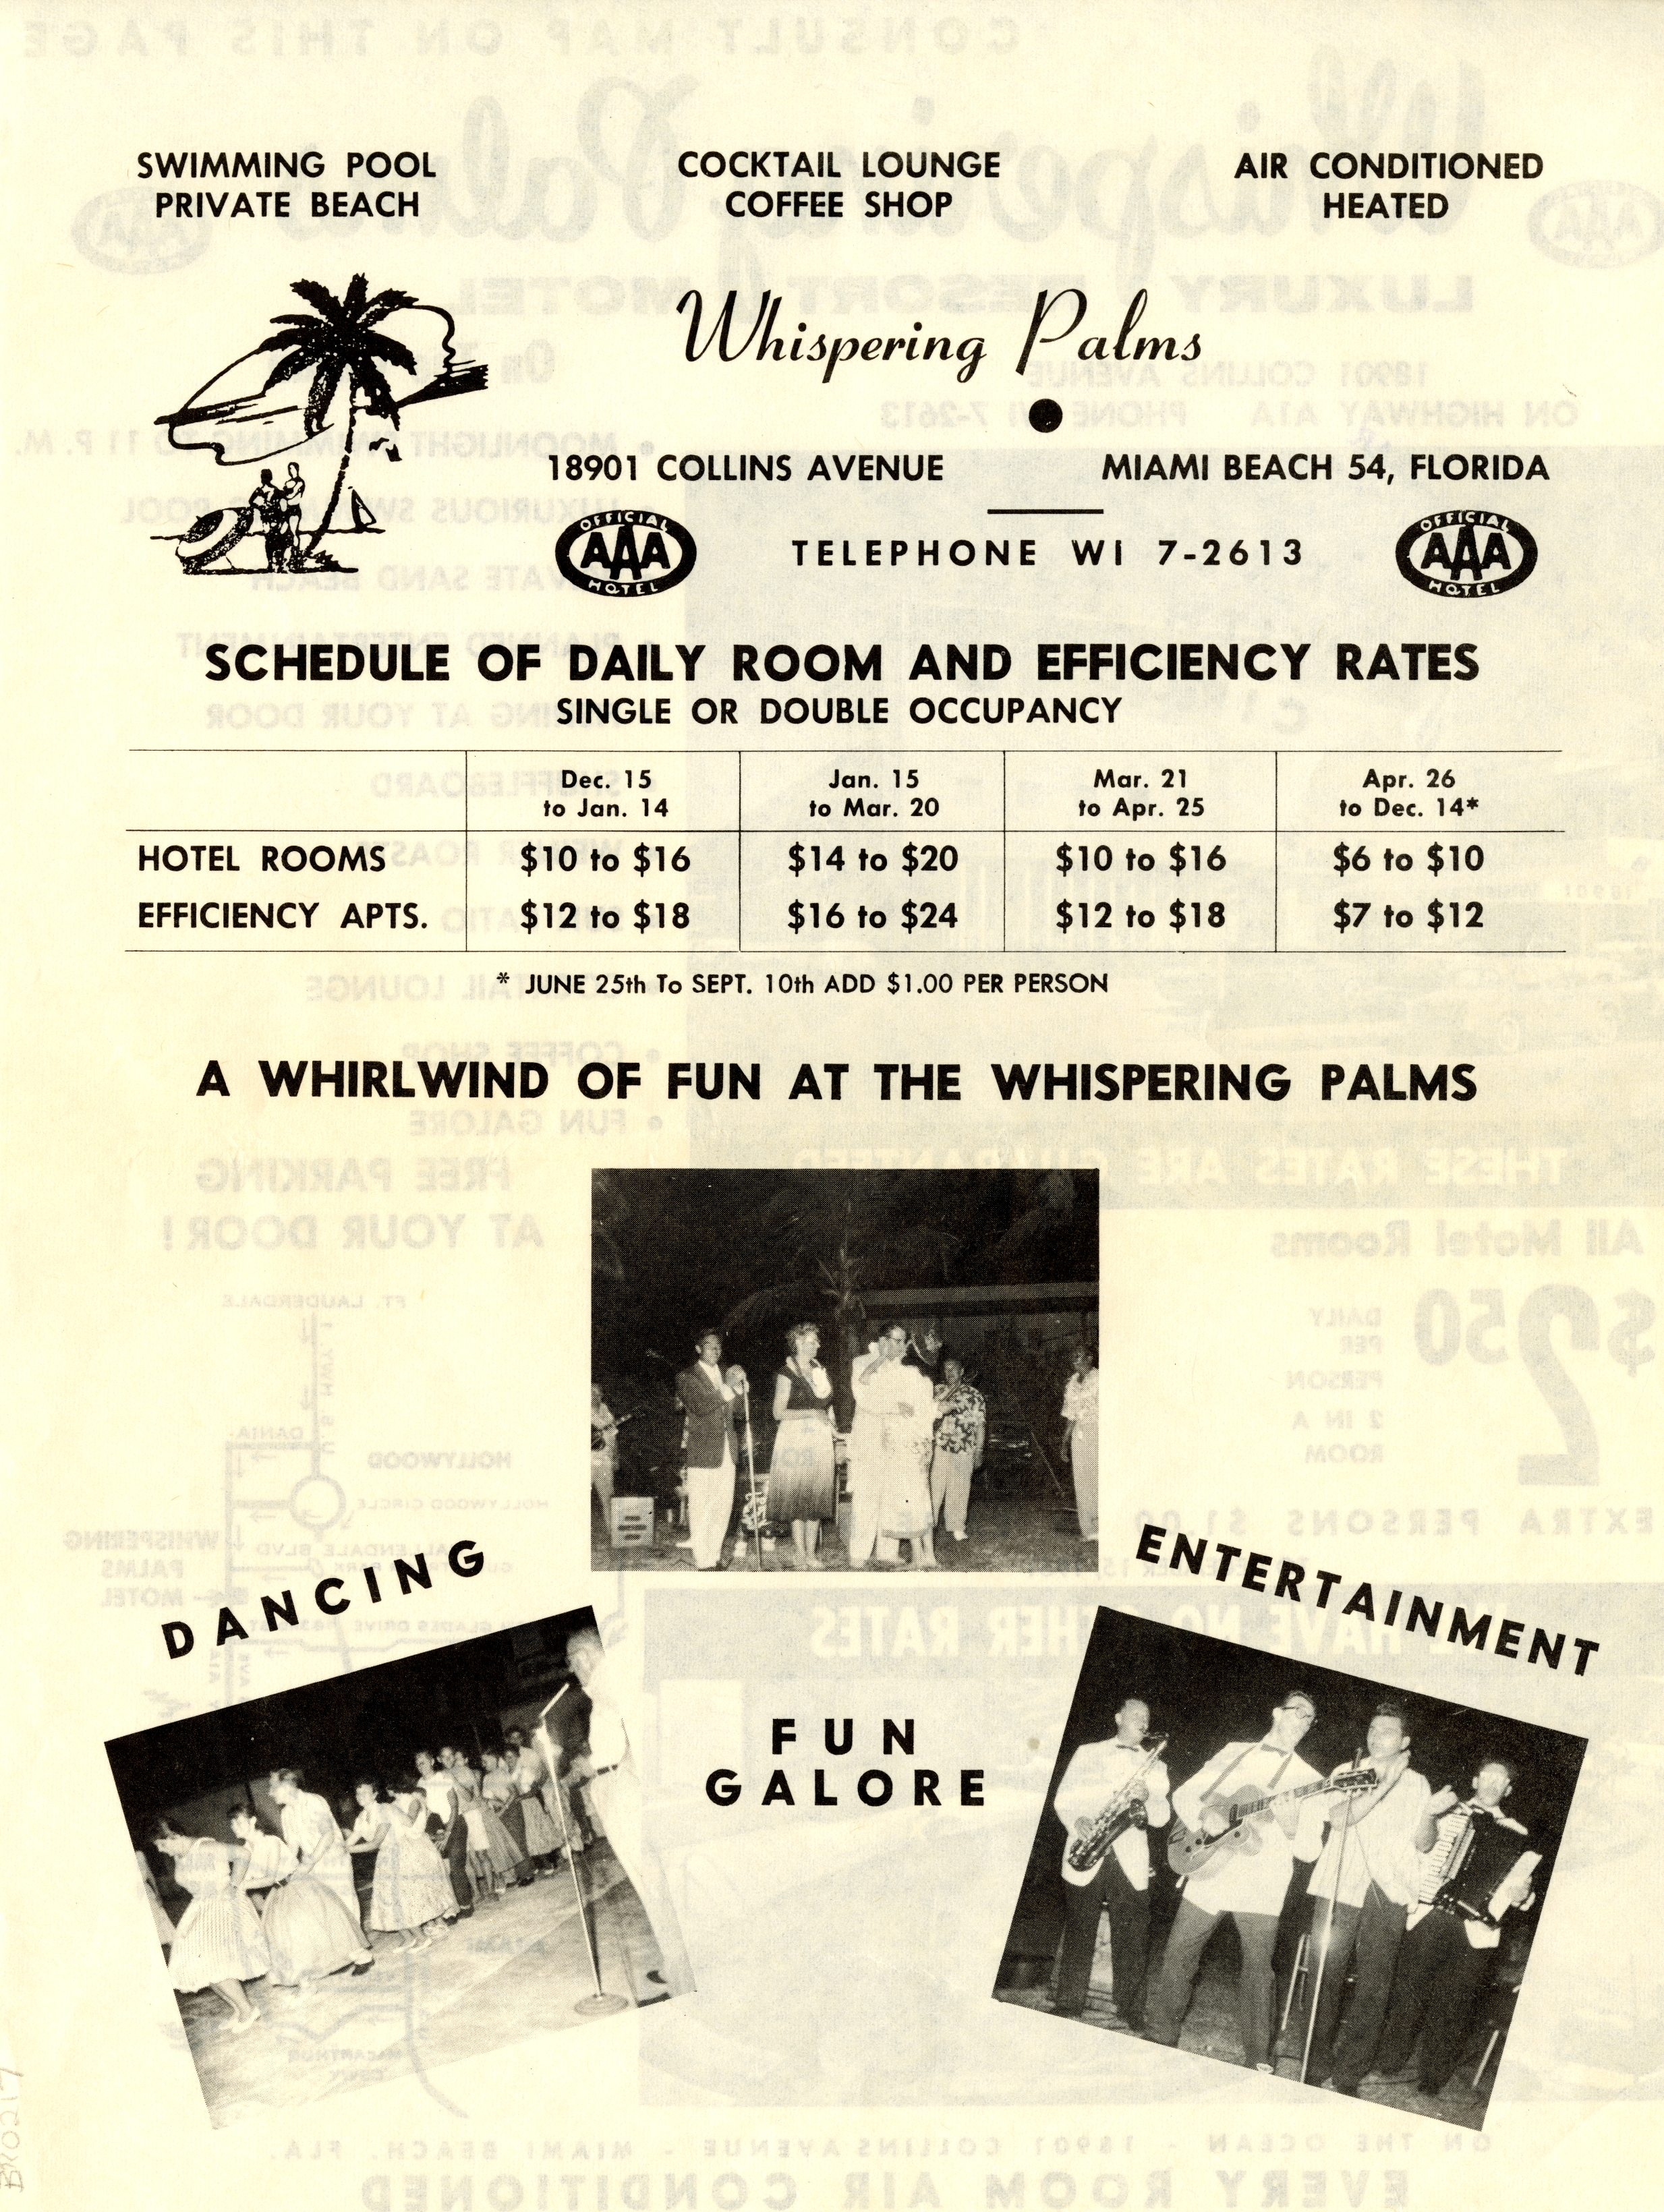 Whispering Palms Luxury Resort Motel, Miami Beach, Florida.